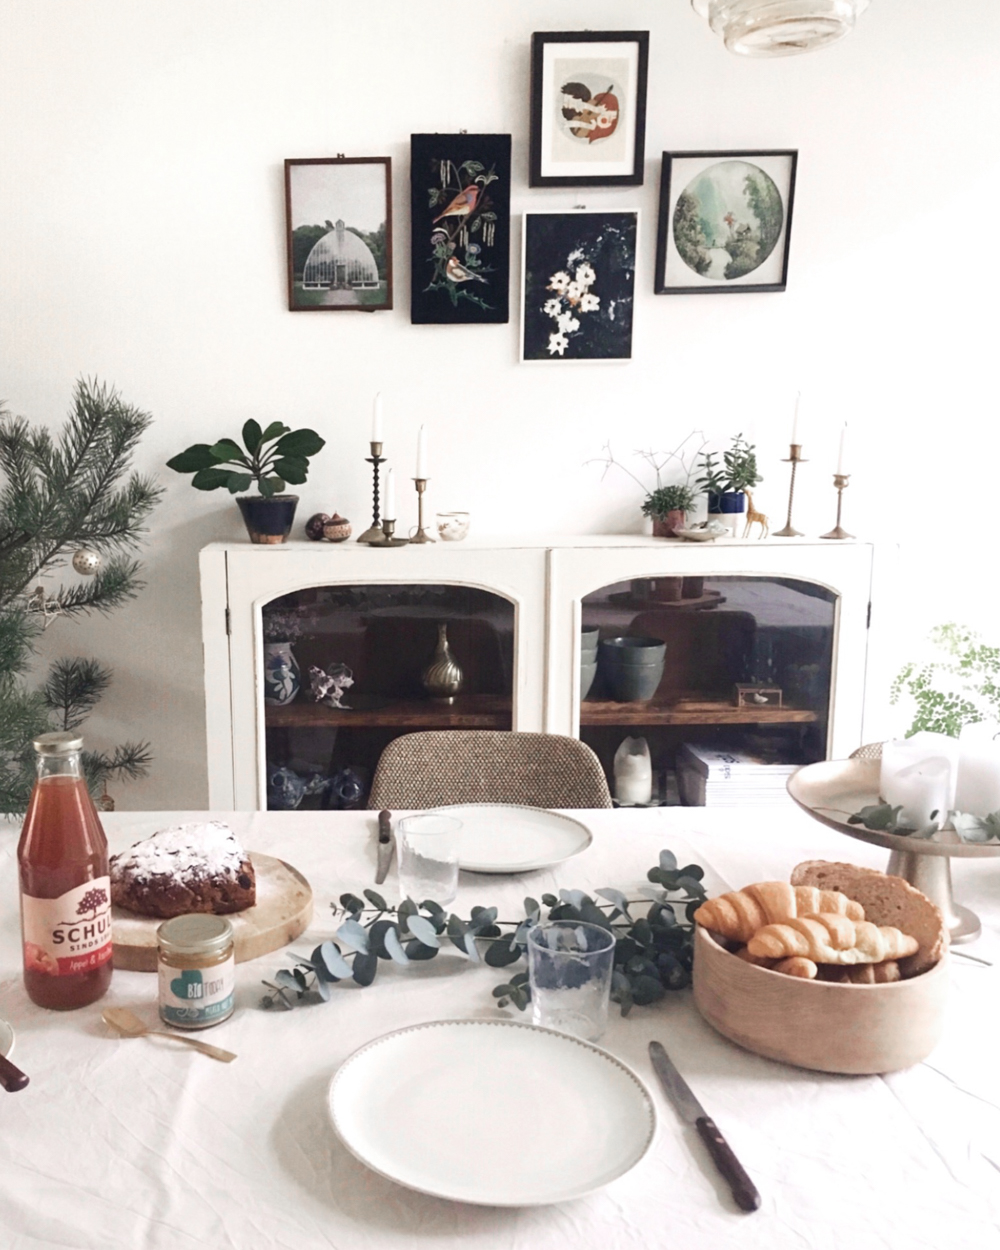 a-simple-christmas-inspire-styling-1-2.jpg